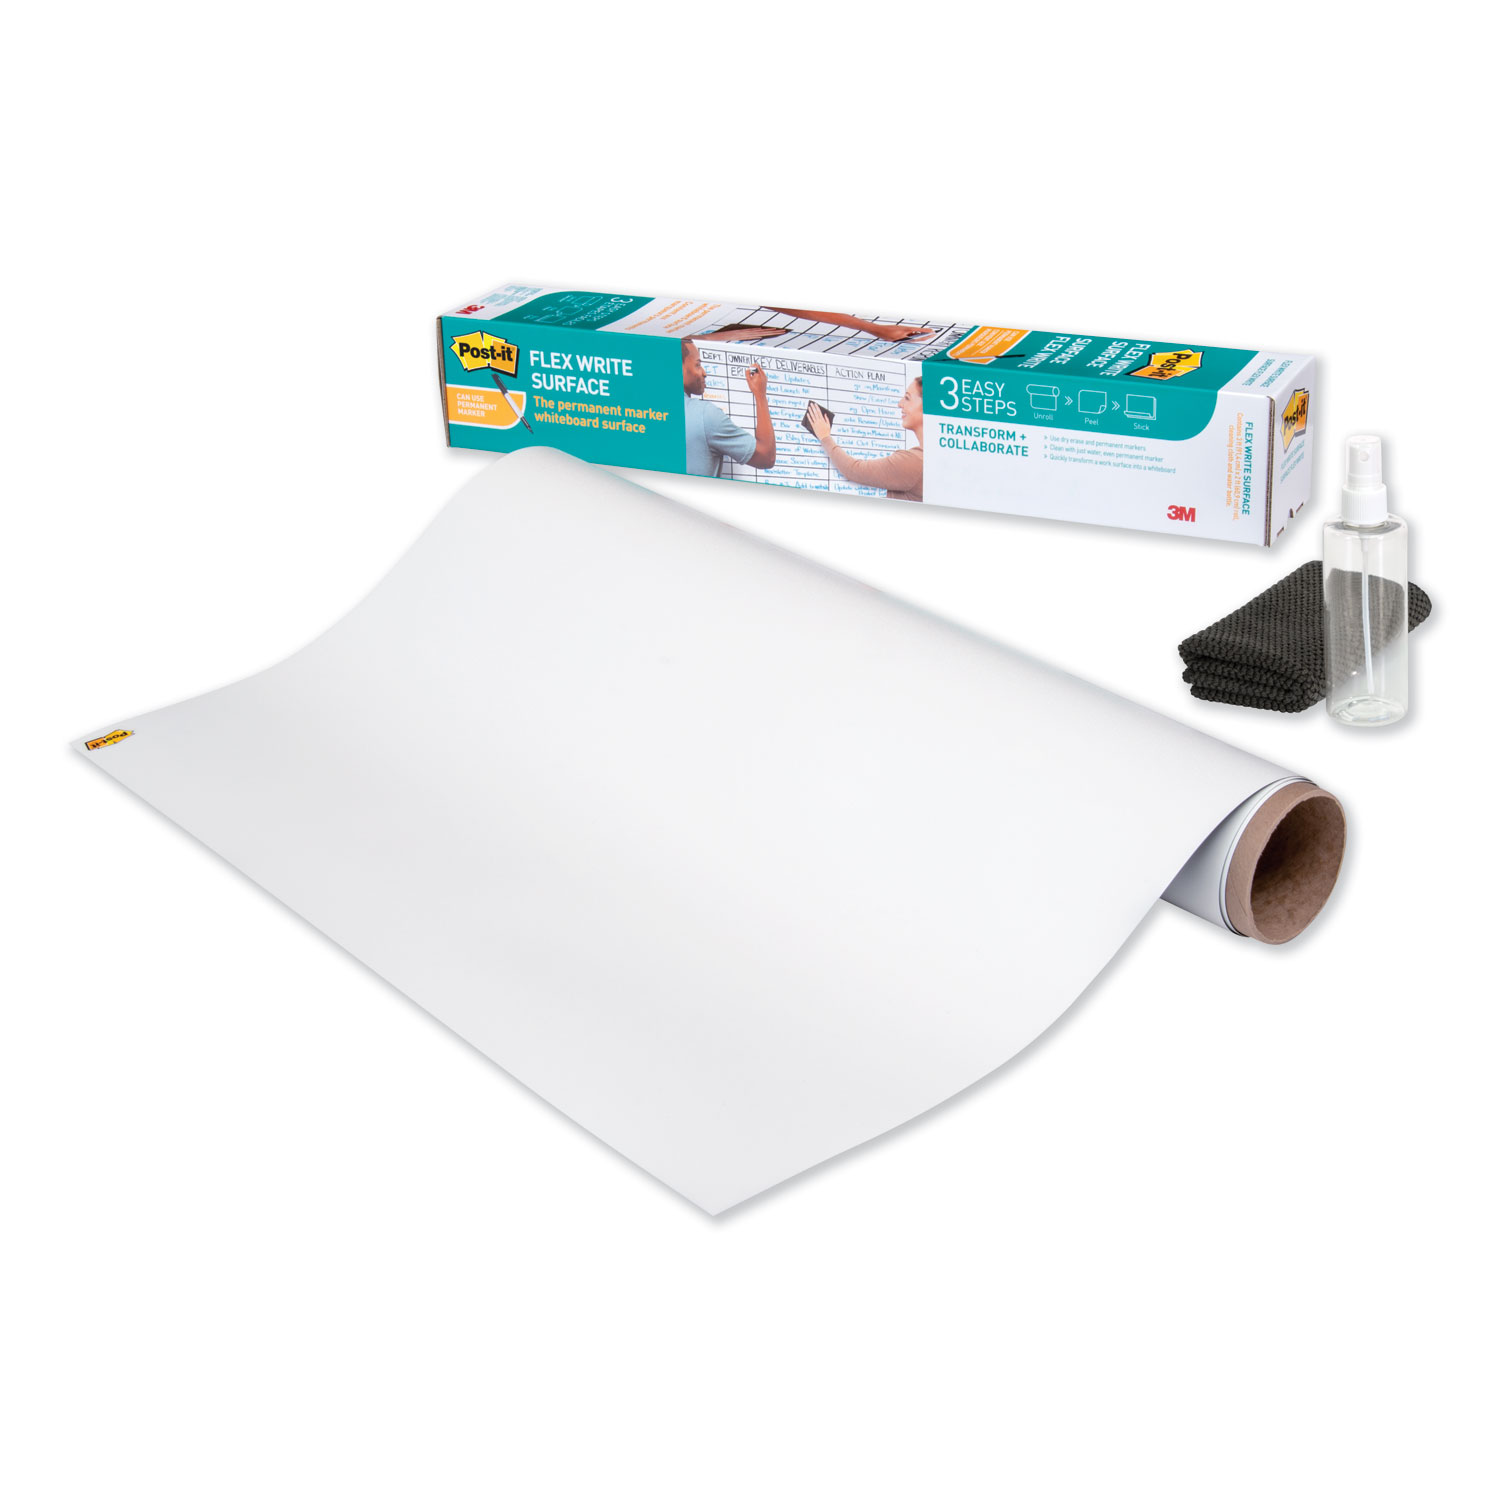 "Flex Write Surface, 48"" x 36"", White"